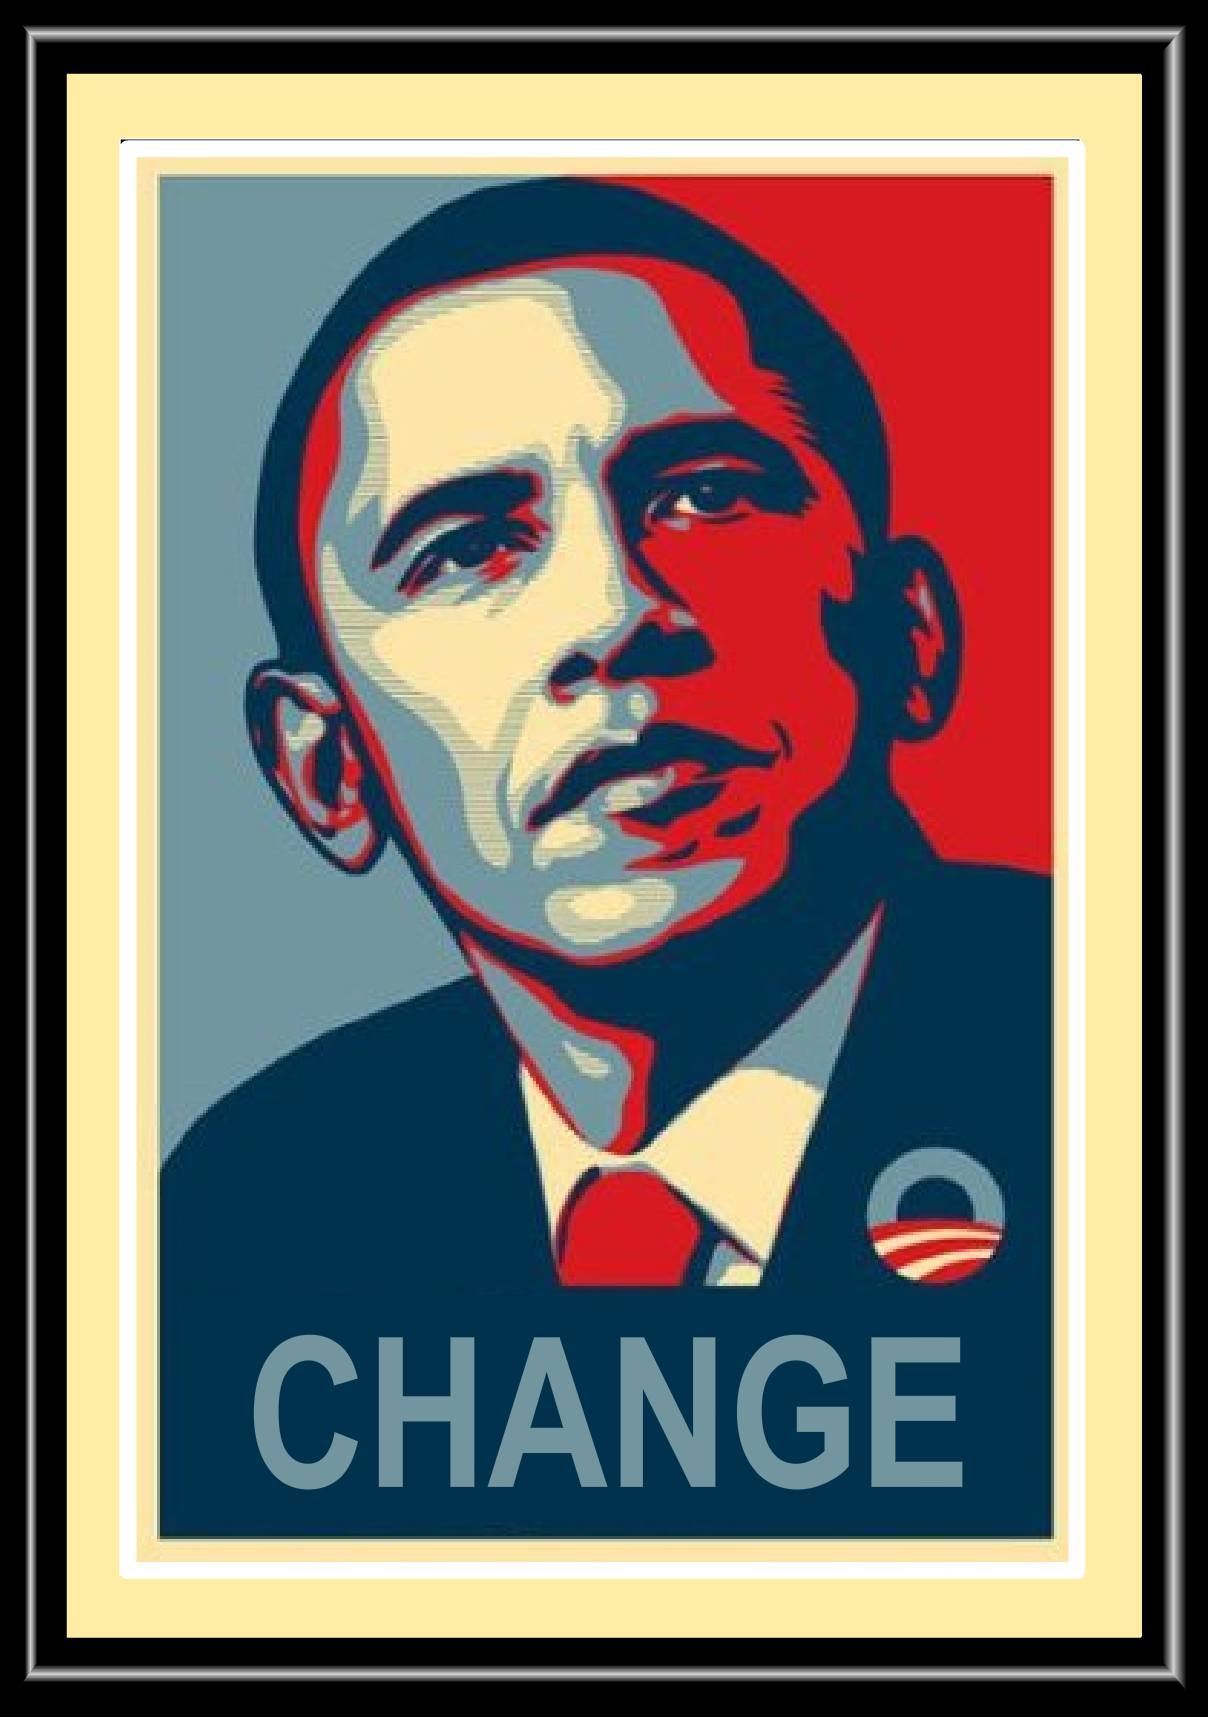 [Image: obama_change_x_framed__poster.jpg]